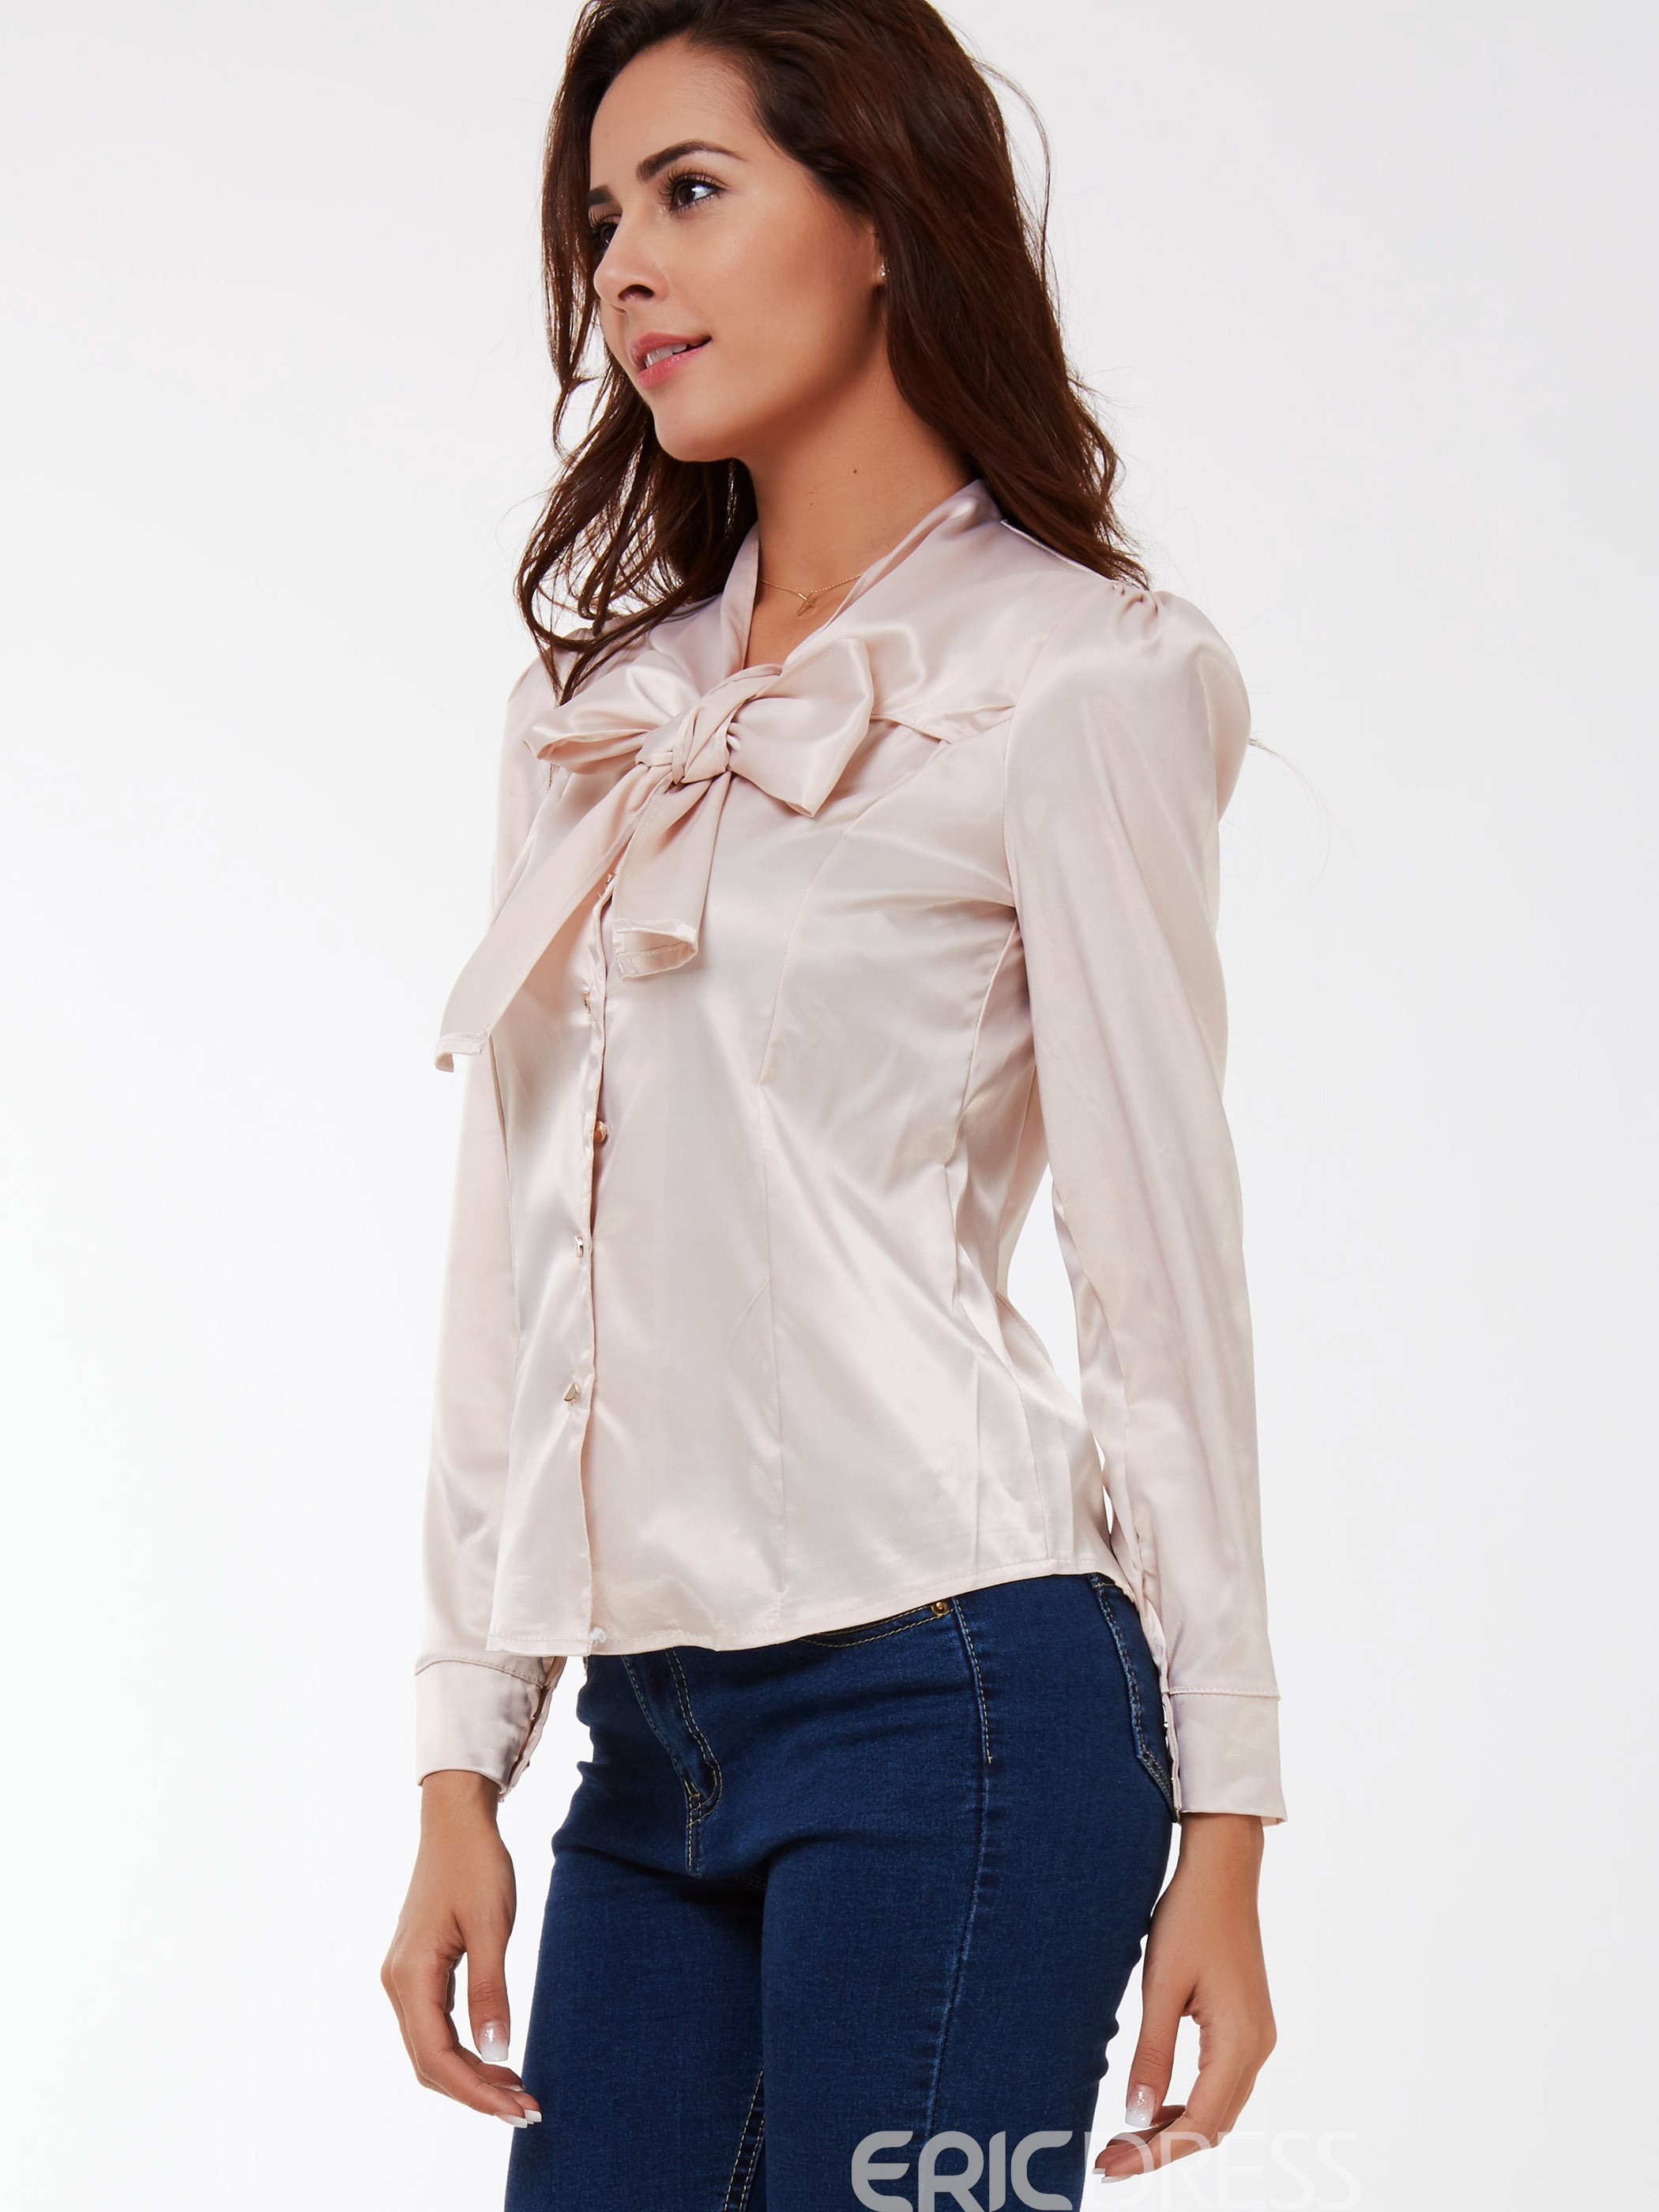 Ericdress Bow Knot Long Sleeve Blouse